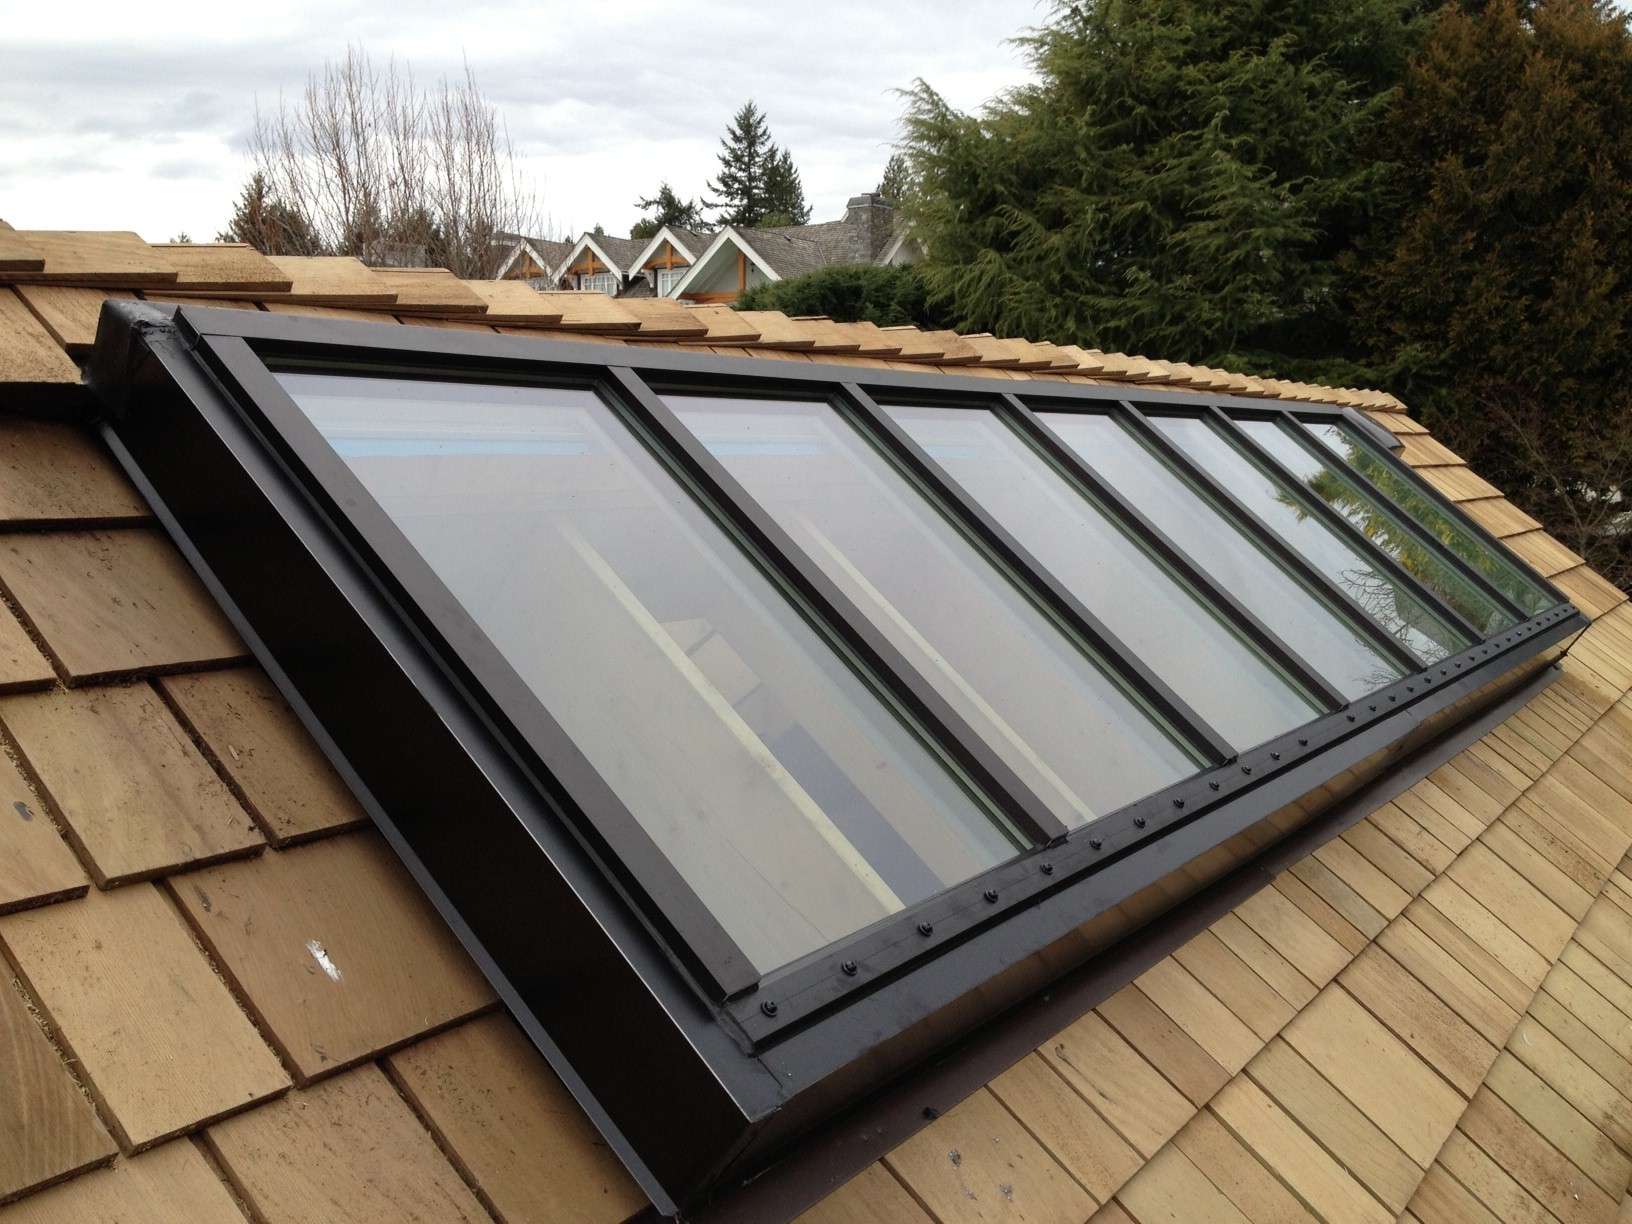 Skylights Roof Glass System Repair Replacement Or New